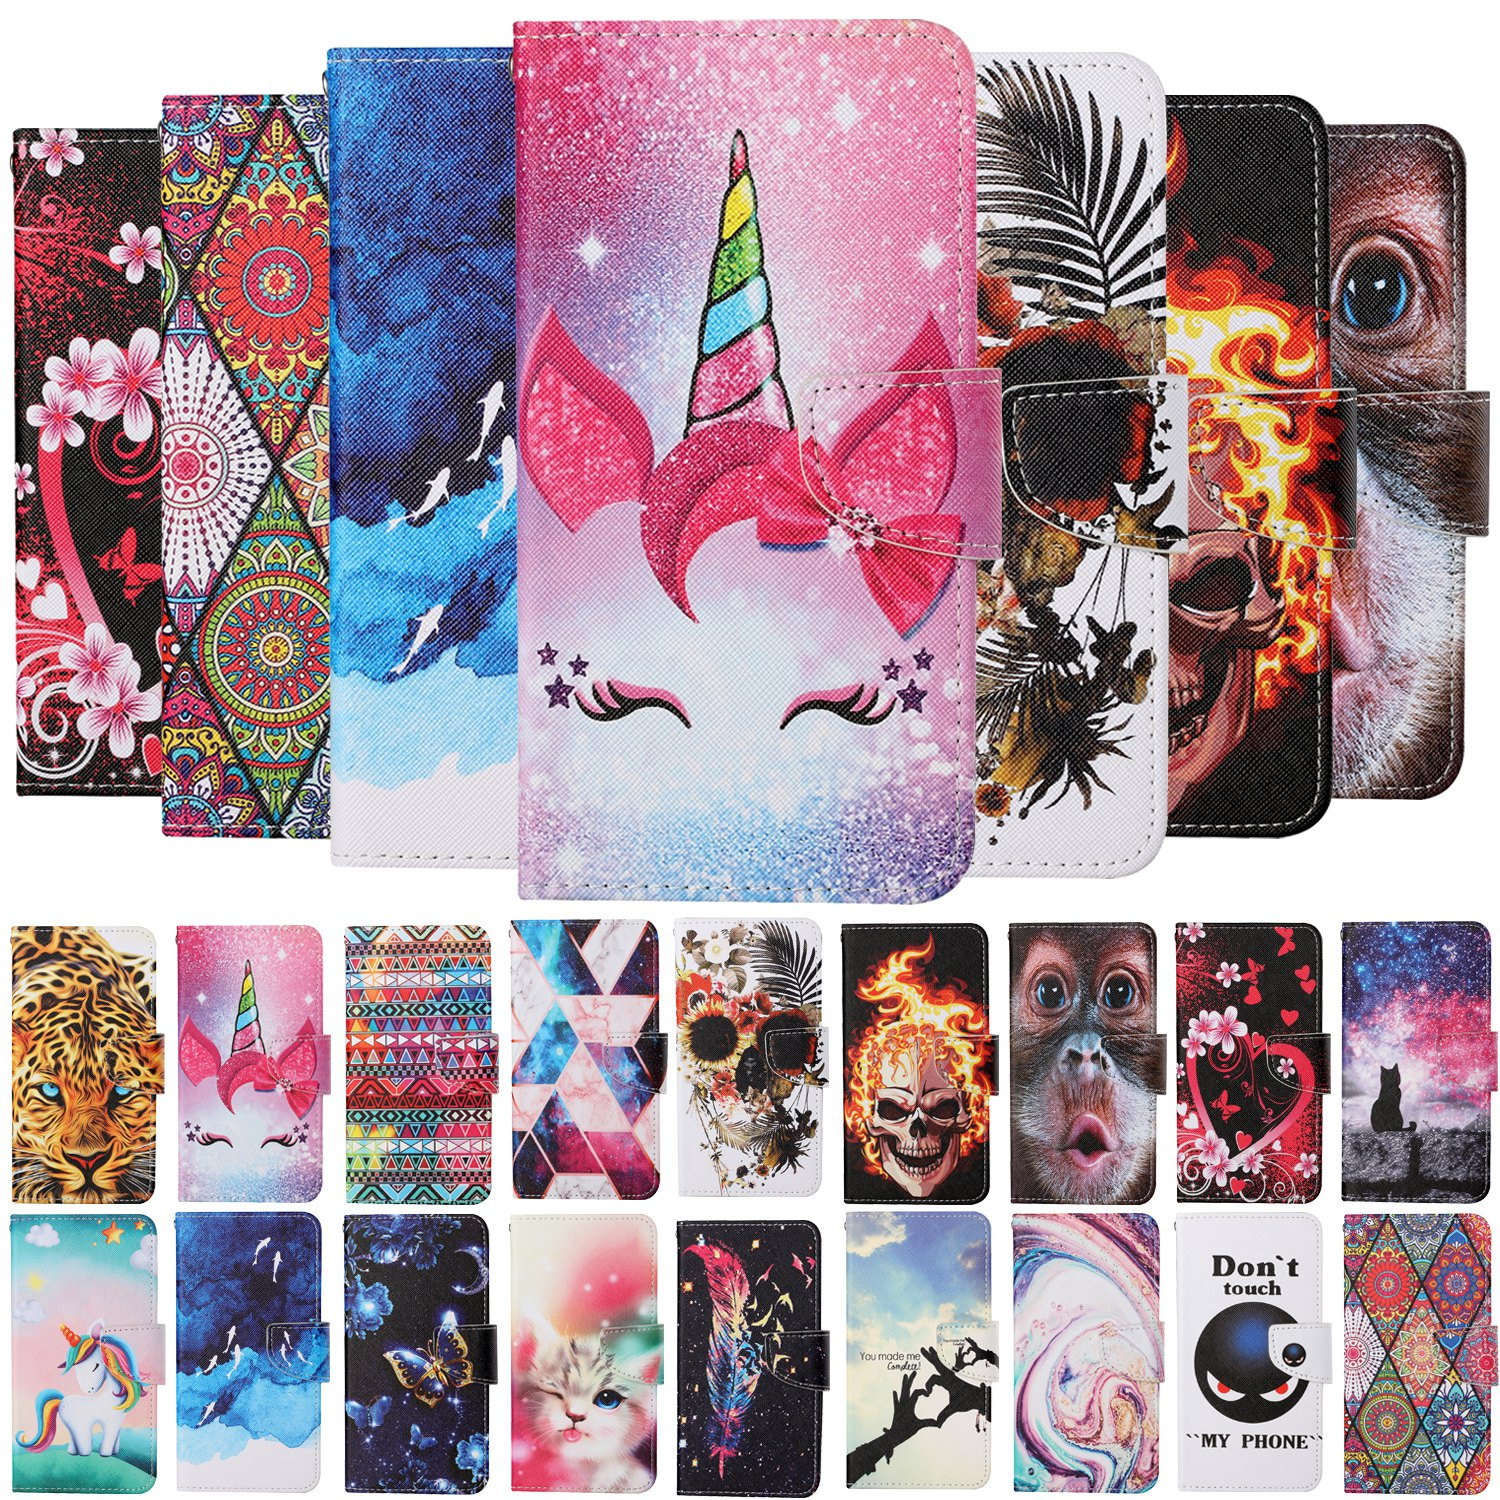 mobile phone case For Samsung Galaxy A20E pu Leather case For Galaxy A20E cartoon Magnetic Wallet Cove enlarge